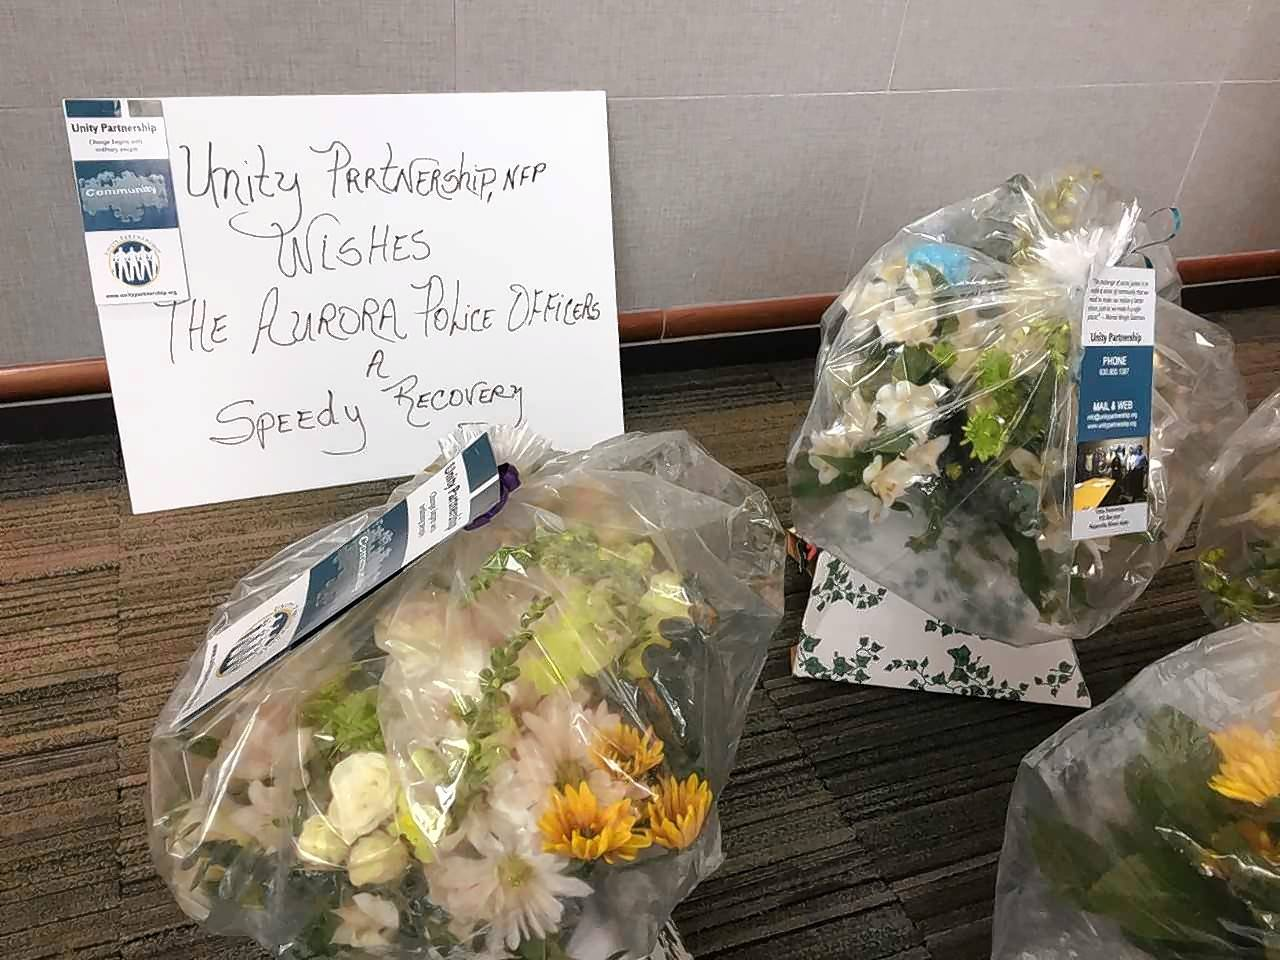 'They need us now': Group that fosters police-community relations brings flowers for the injured